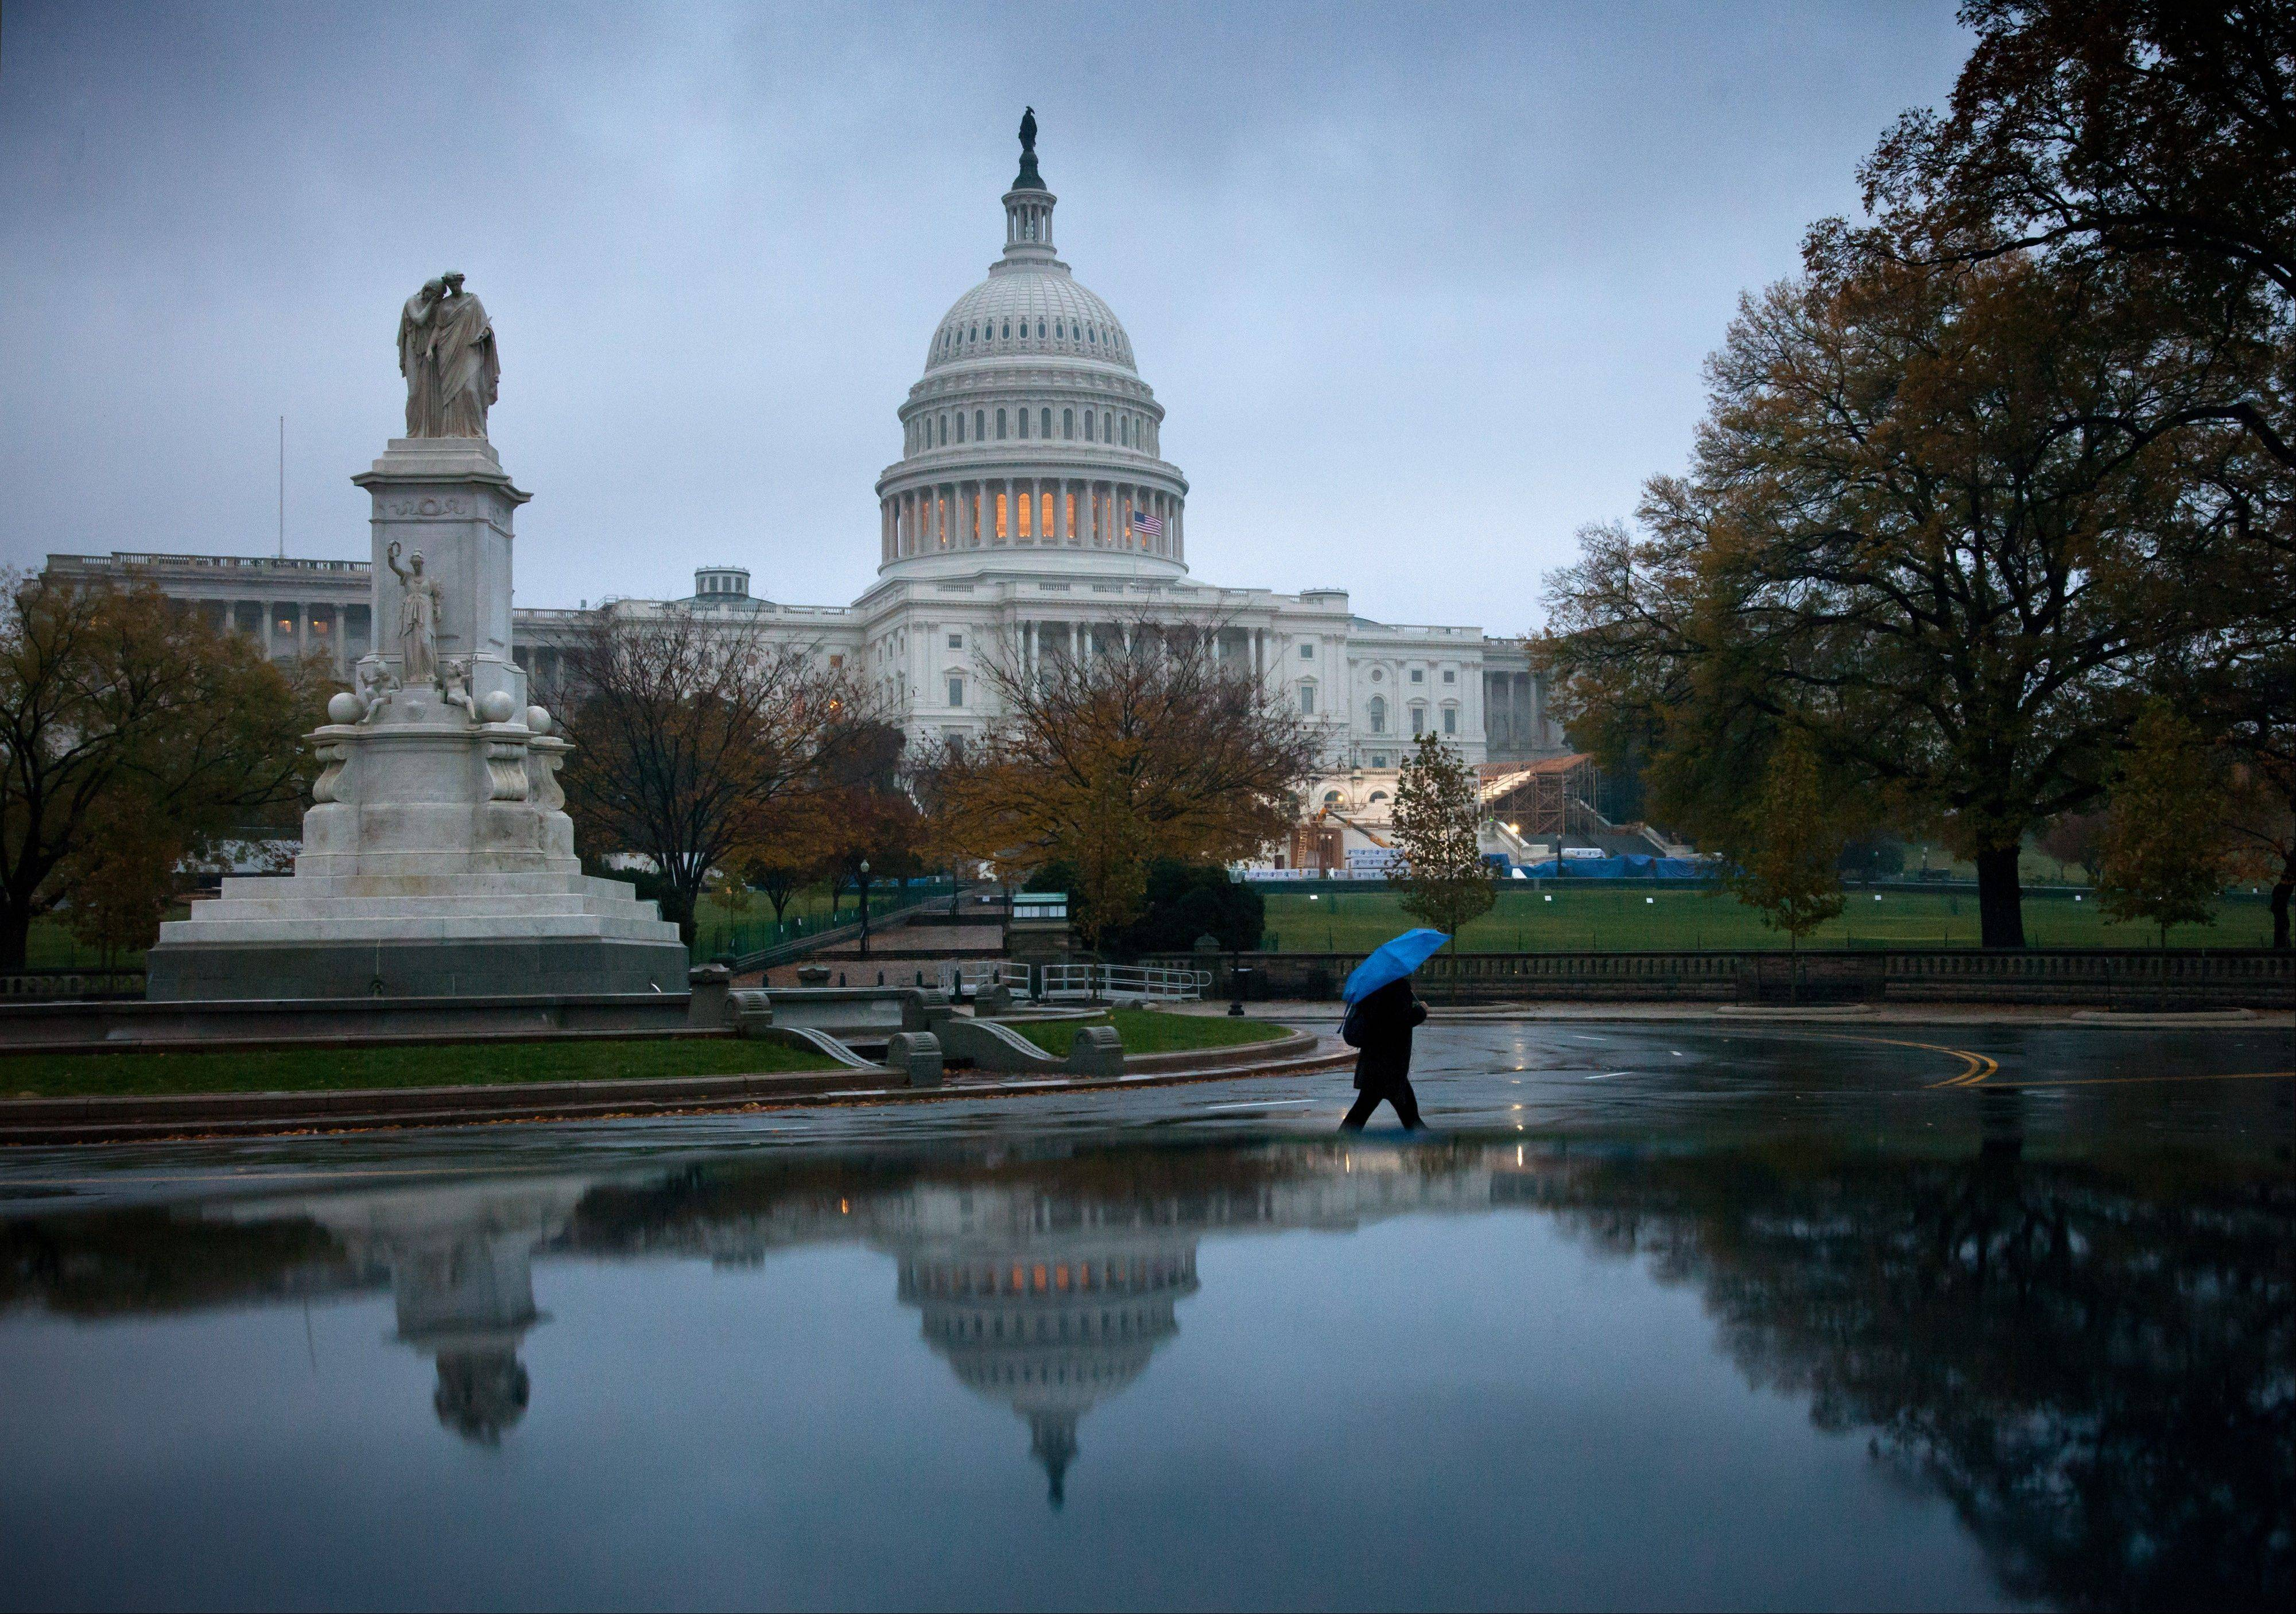 After a seven-week pause, Congress returns Tuesday to a crowded agenda of unfinished business overshadowed by the urgent need for President Barack Obama and lawmakers to avert the economic double hit of tax increases and automatic spending cuts, at the Capitol in Washington, Tuesday, Nov. 13, 2012.